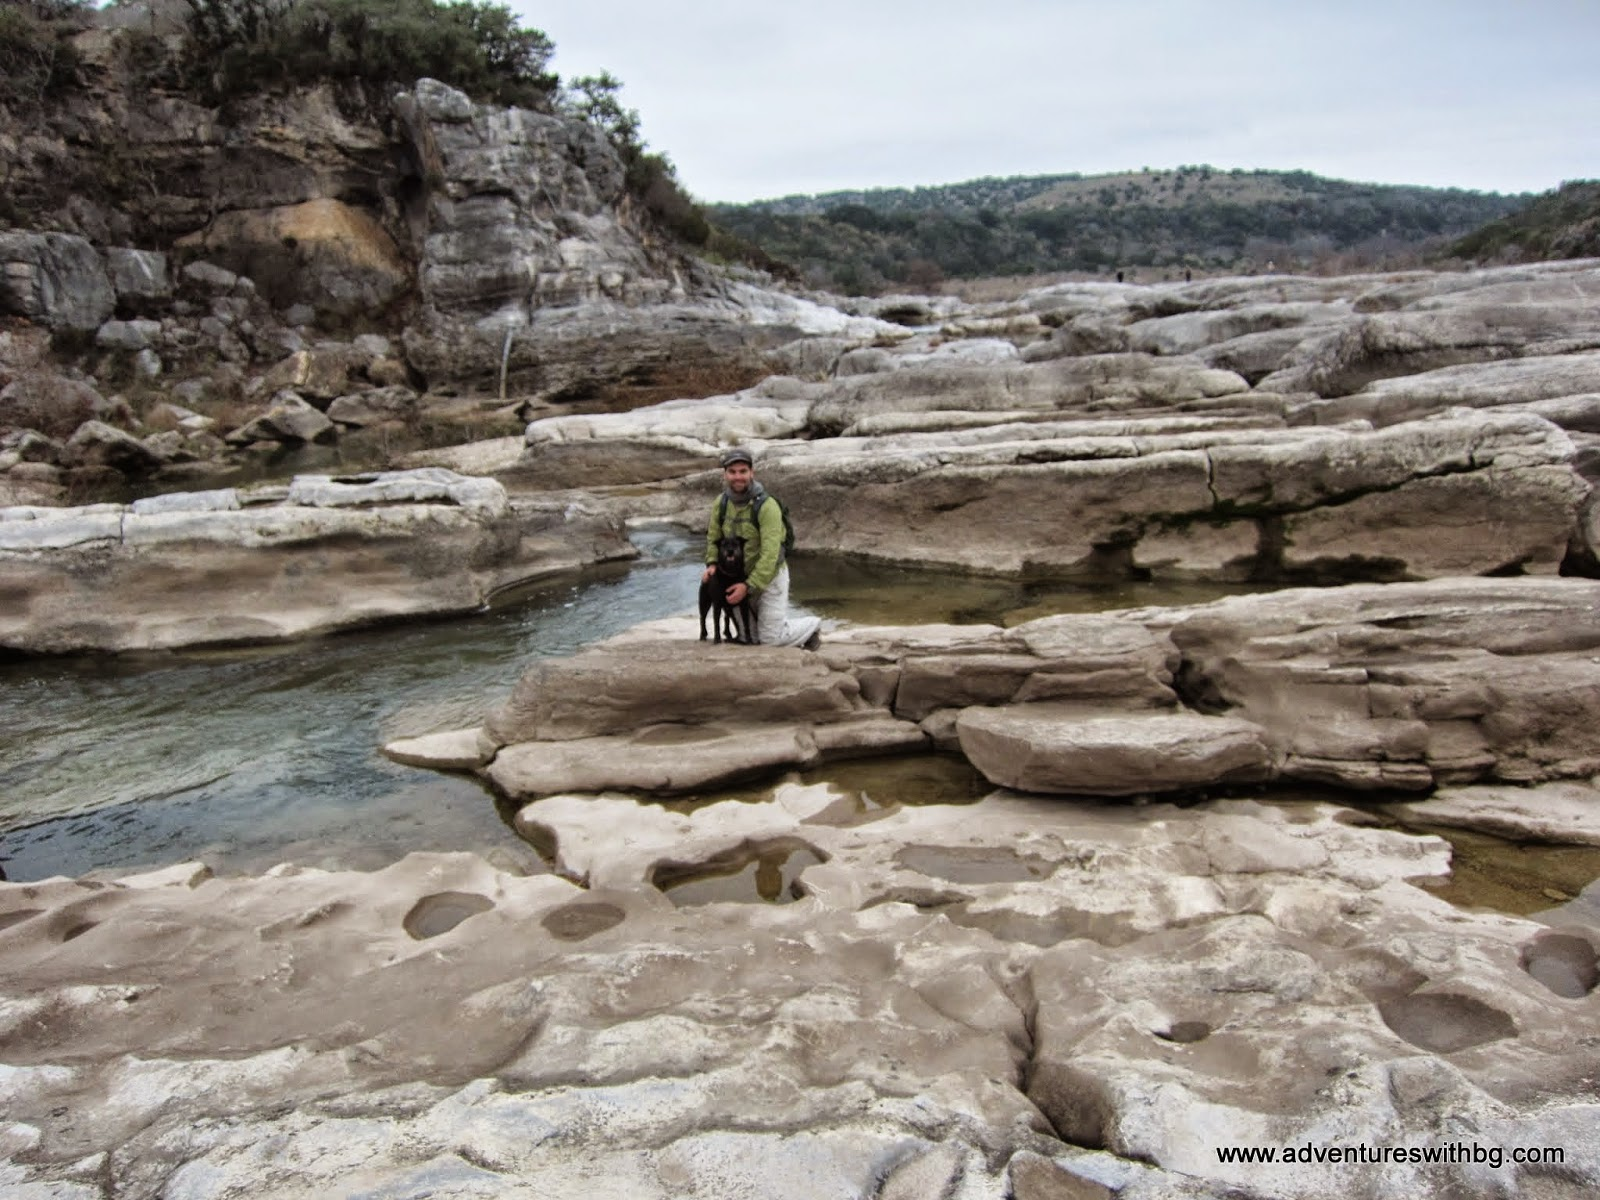 The water of the Pedernales River is quick flowing through all the rocks